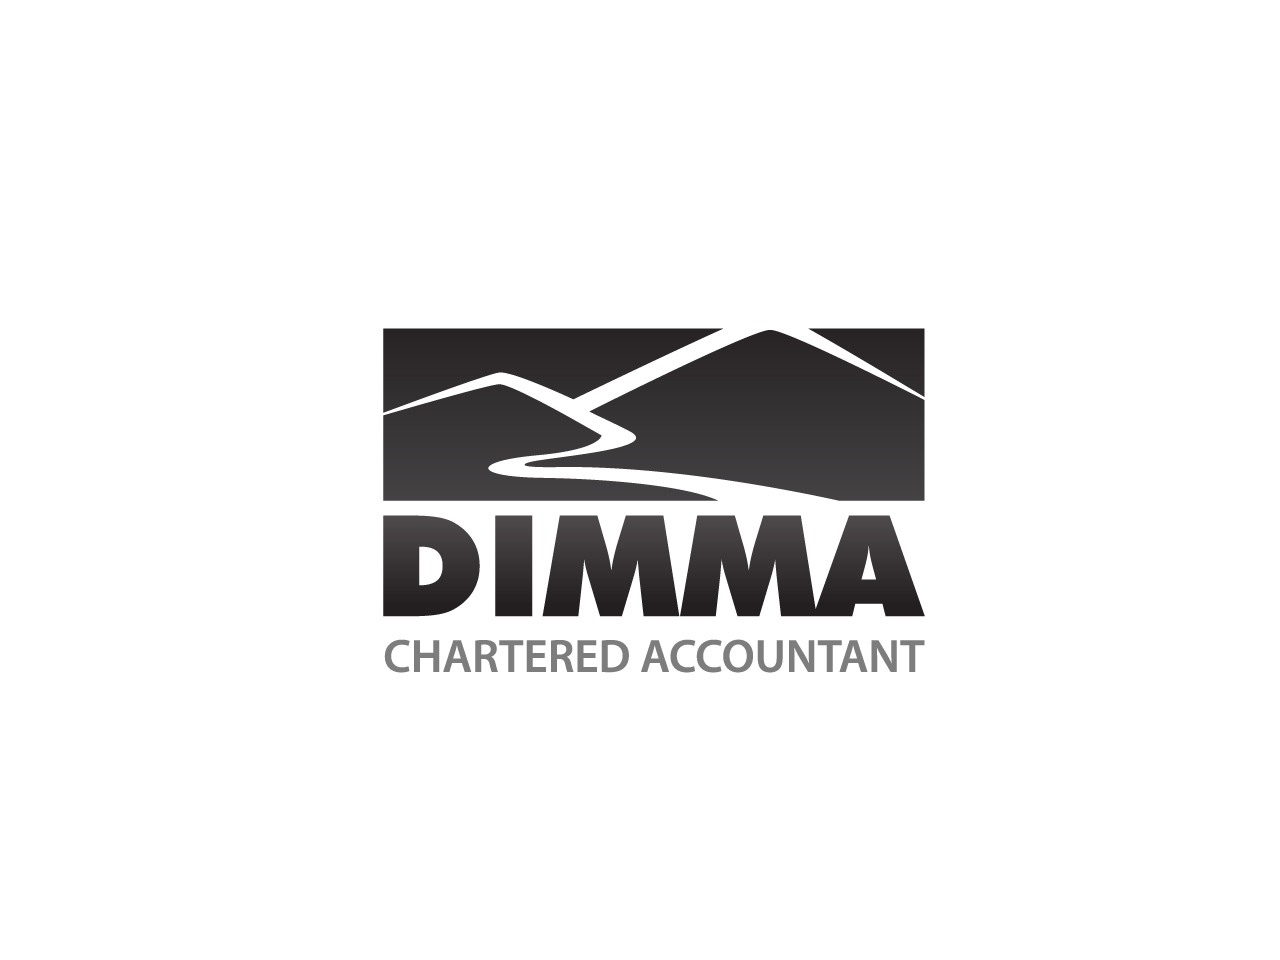 Logo Design by jpbituin - Entry No. 122 in the Logo Design Contest Creative Logo Design for Dimma Chartered Accountant.